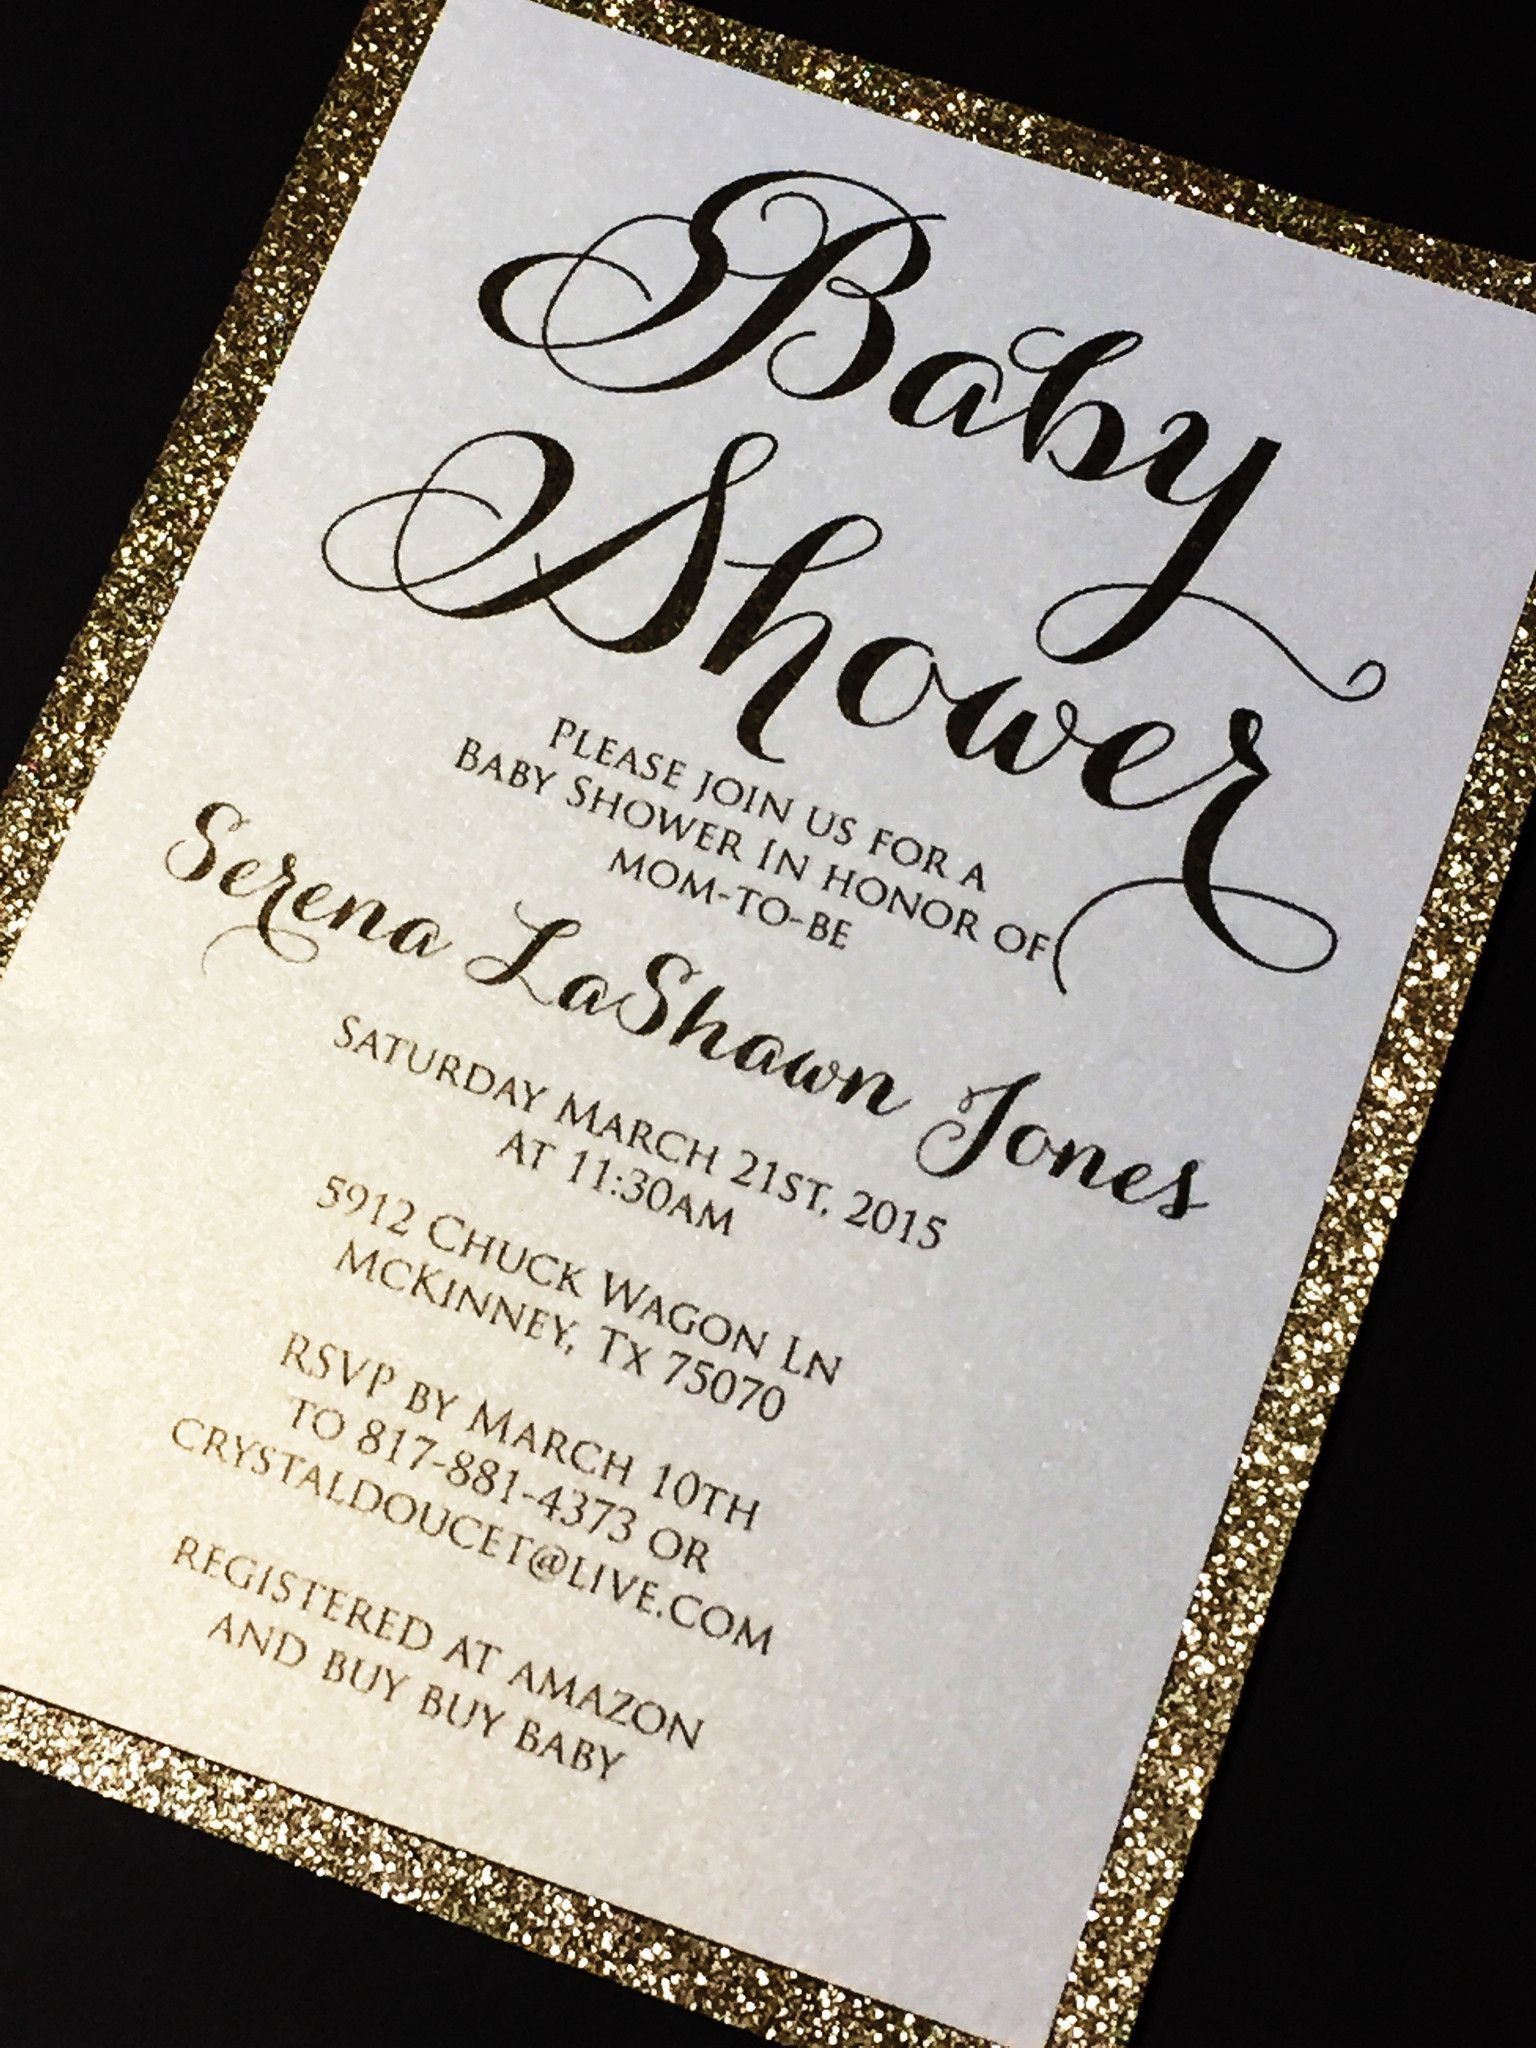 Baby Shower Invitation Glitter Invitations Engagement Announcement Wedding Gold Silver Cut Invite Serena